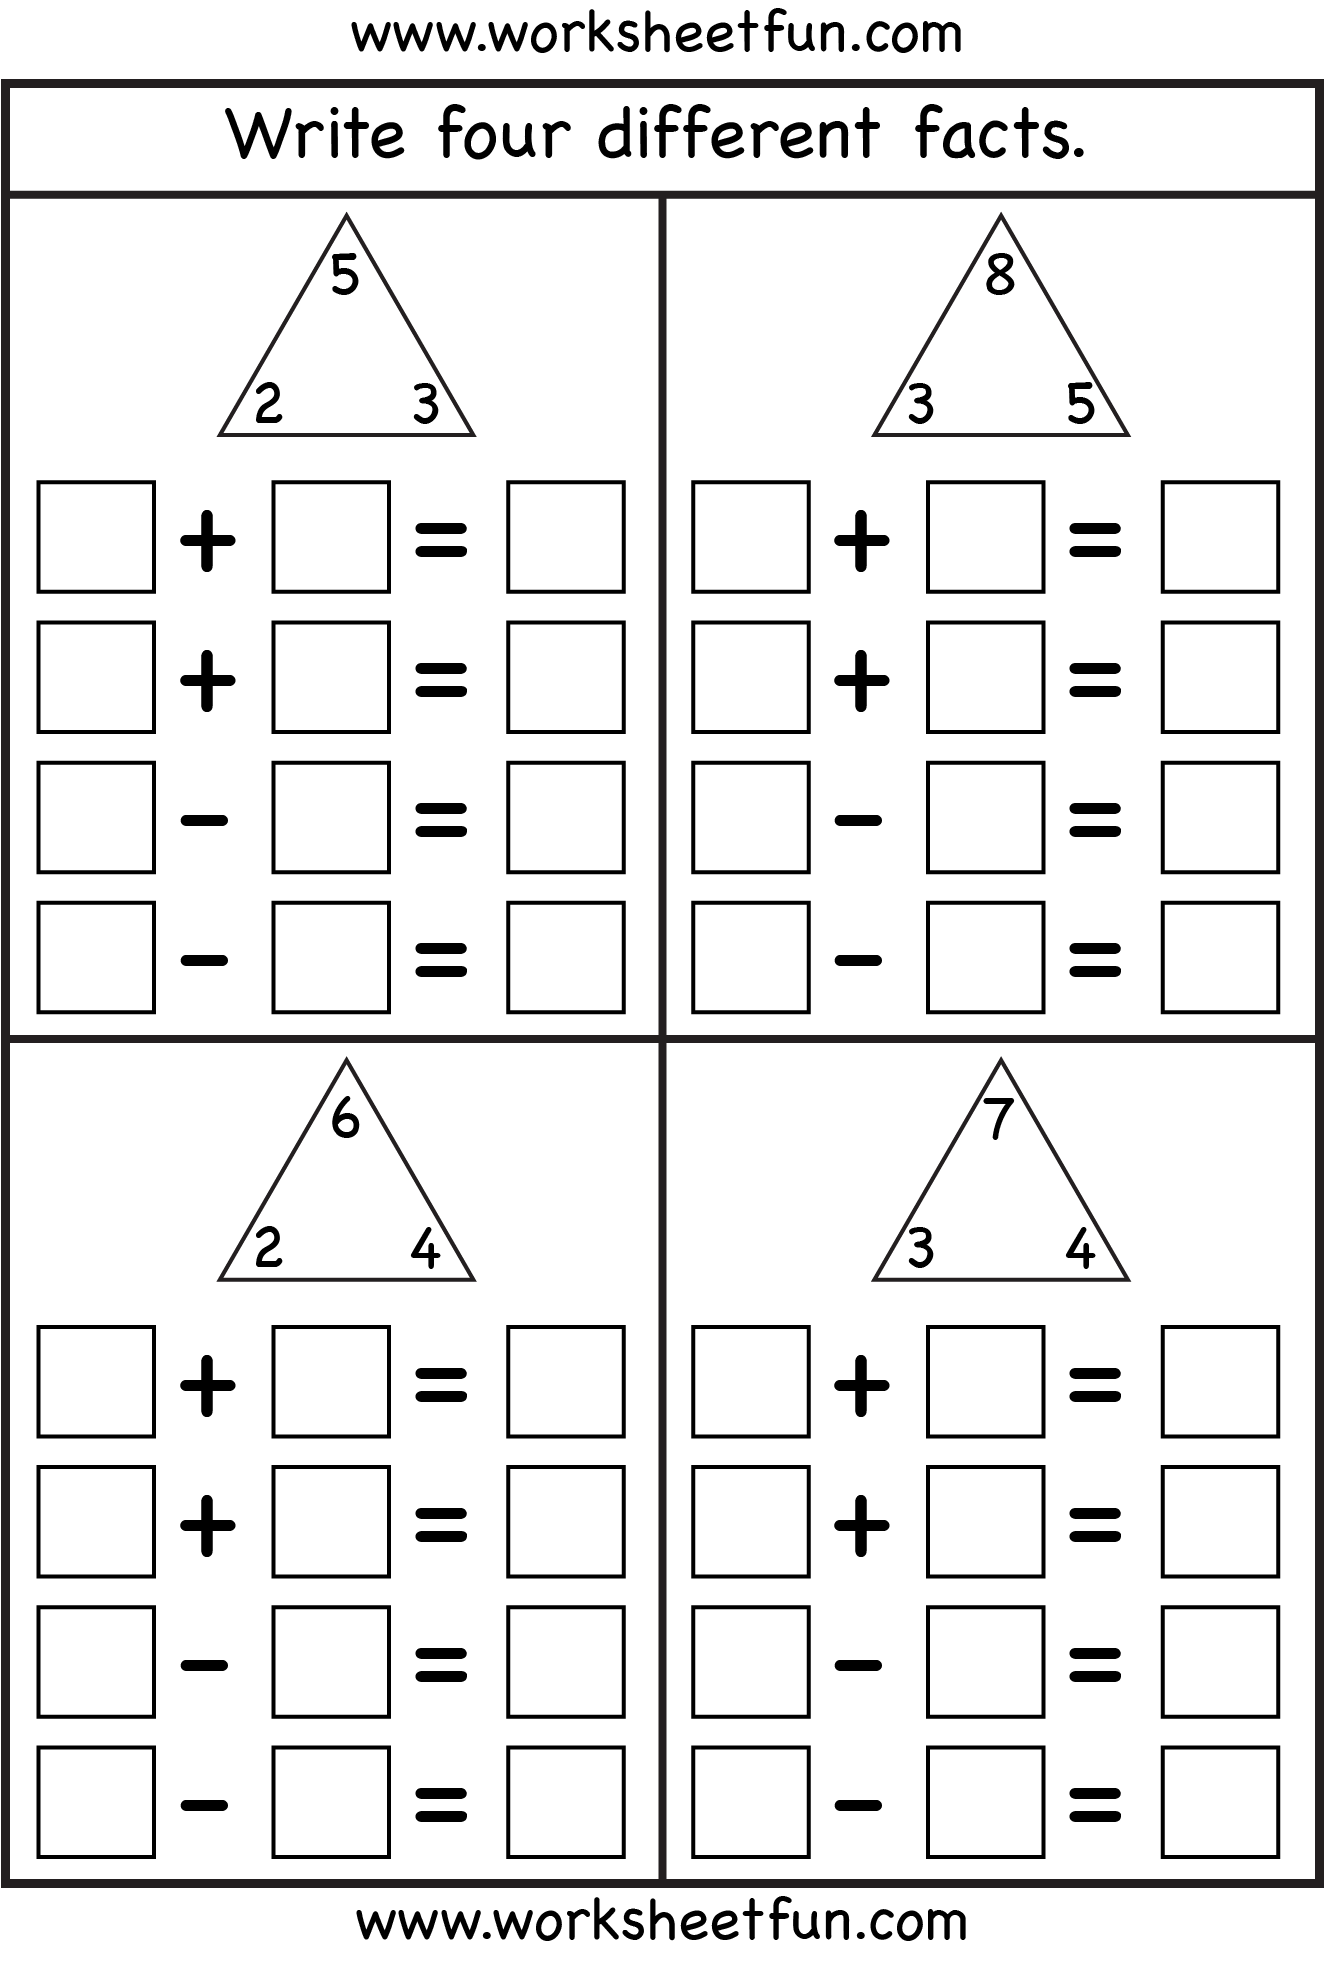 Printables Fact Family Worksheets fact family 4 worksheets printable pinterest worksheets